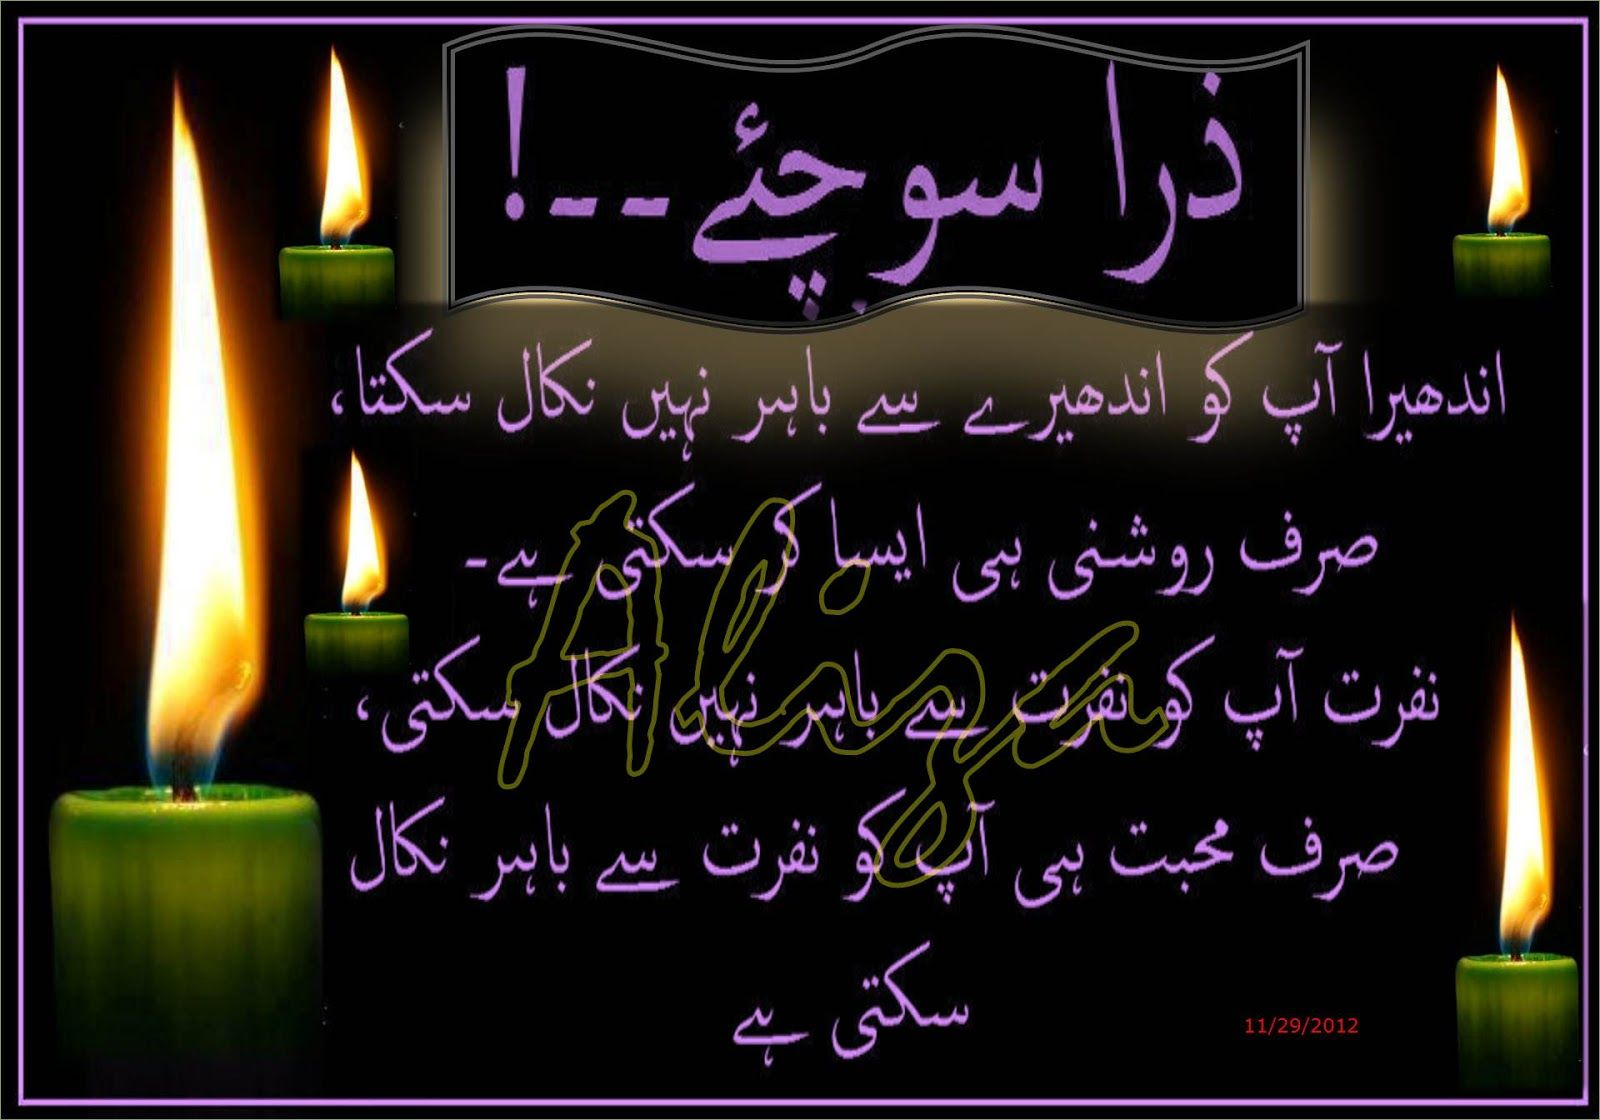 Shayri In English Google Search Quotes T English: Beautiful Friendship Poetry In Urdu - Google Search